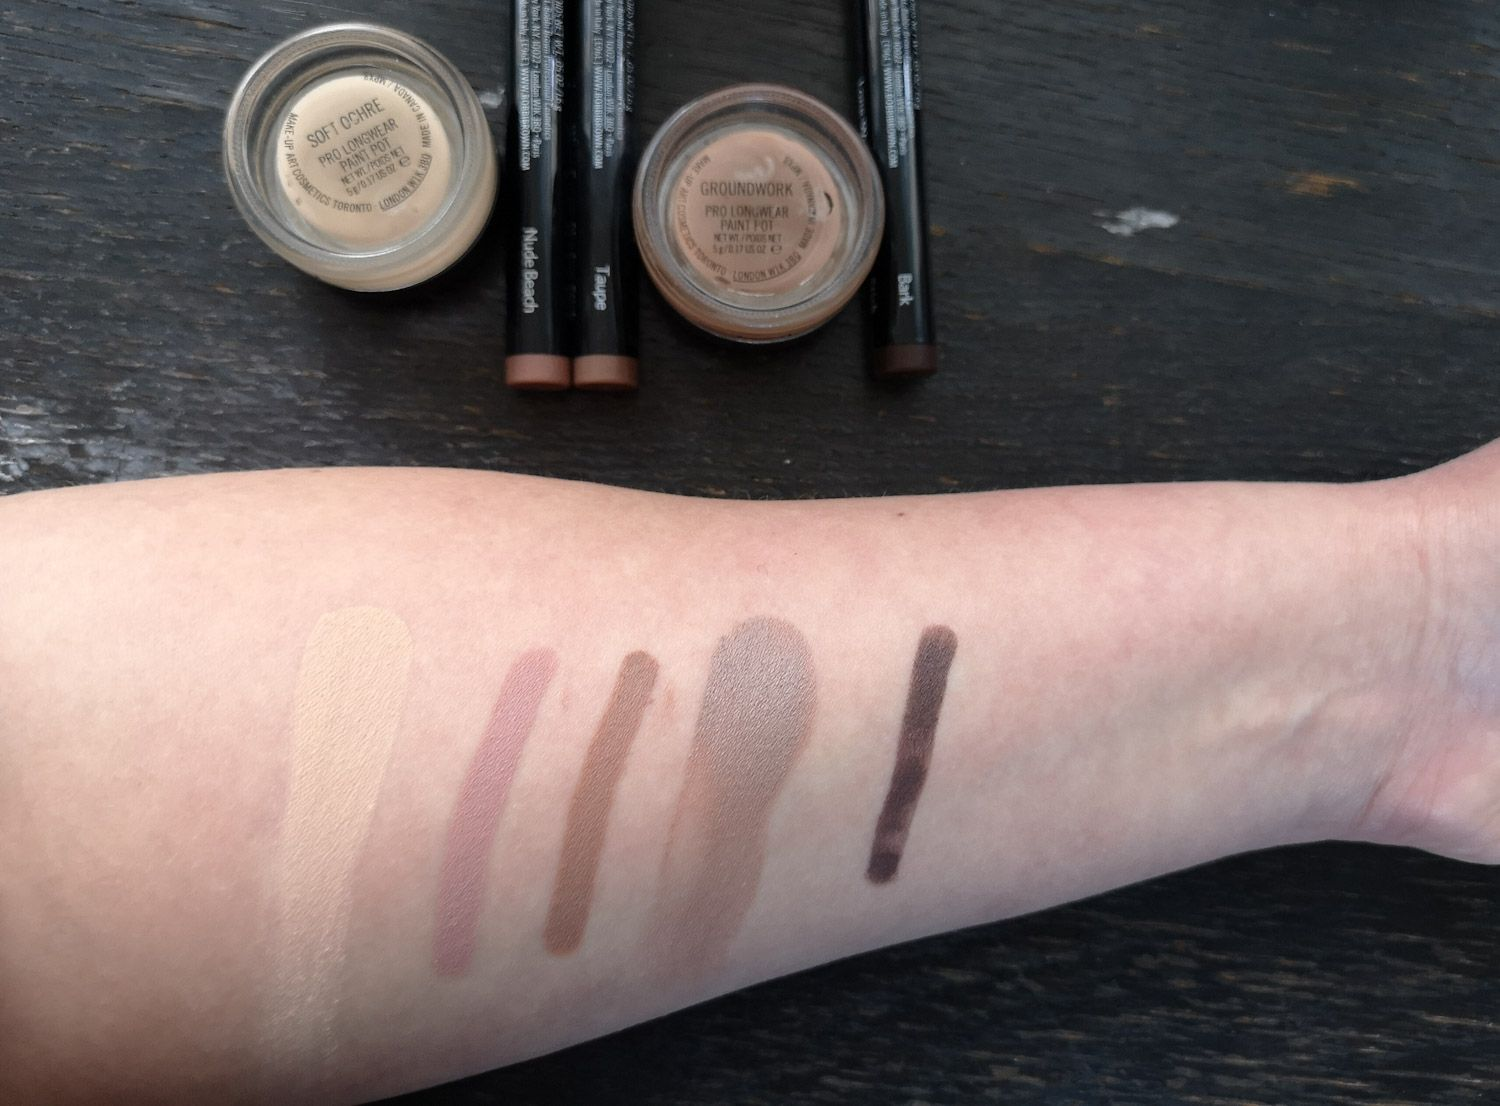 Bobbi Brown long wear Cream Shadow Stick in Bark reviews